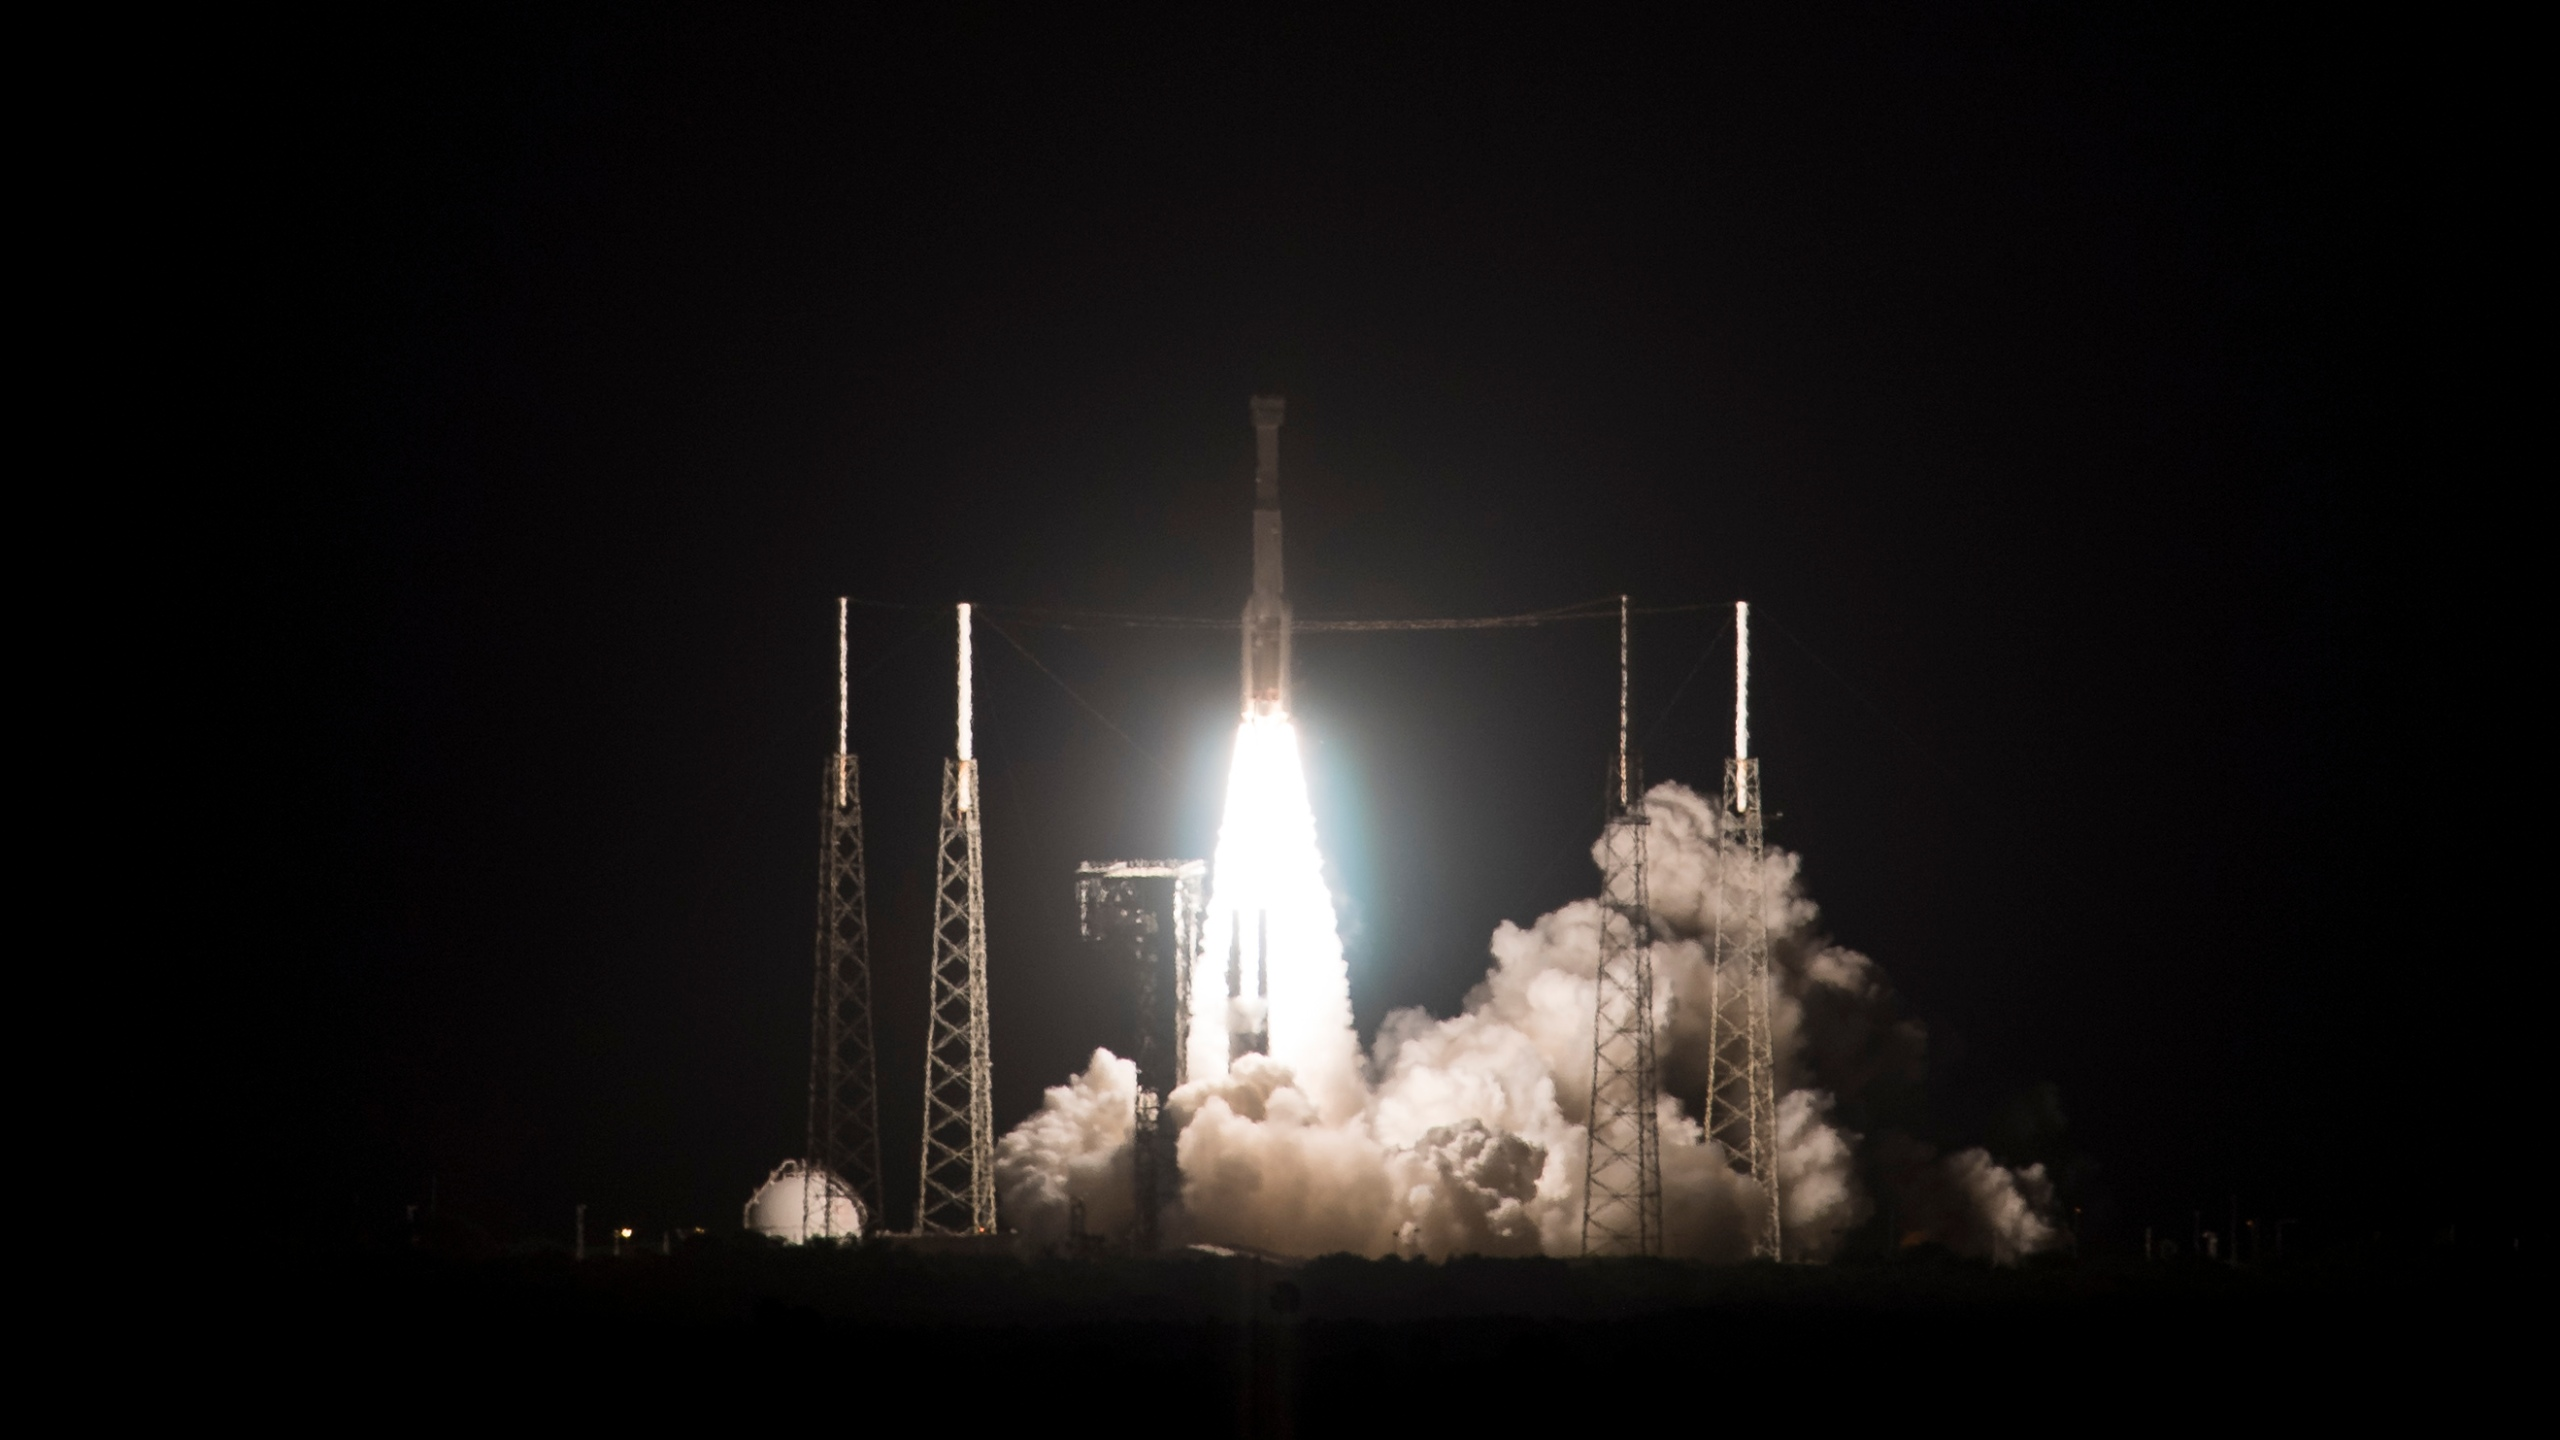 A United Launch Alliance Atlas V rocket with Boeings CST-100 Starliner spacecraft launches from Space Launch Complex 41, Dec. 20, 2019, at Cape Canaveral Air Force Station in Florida. (Credit: Joel Kowsky/NASA via Getty Images)